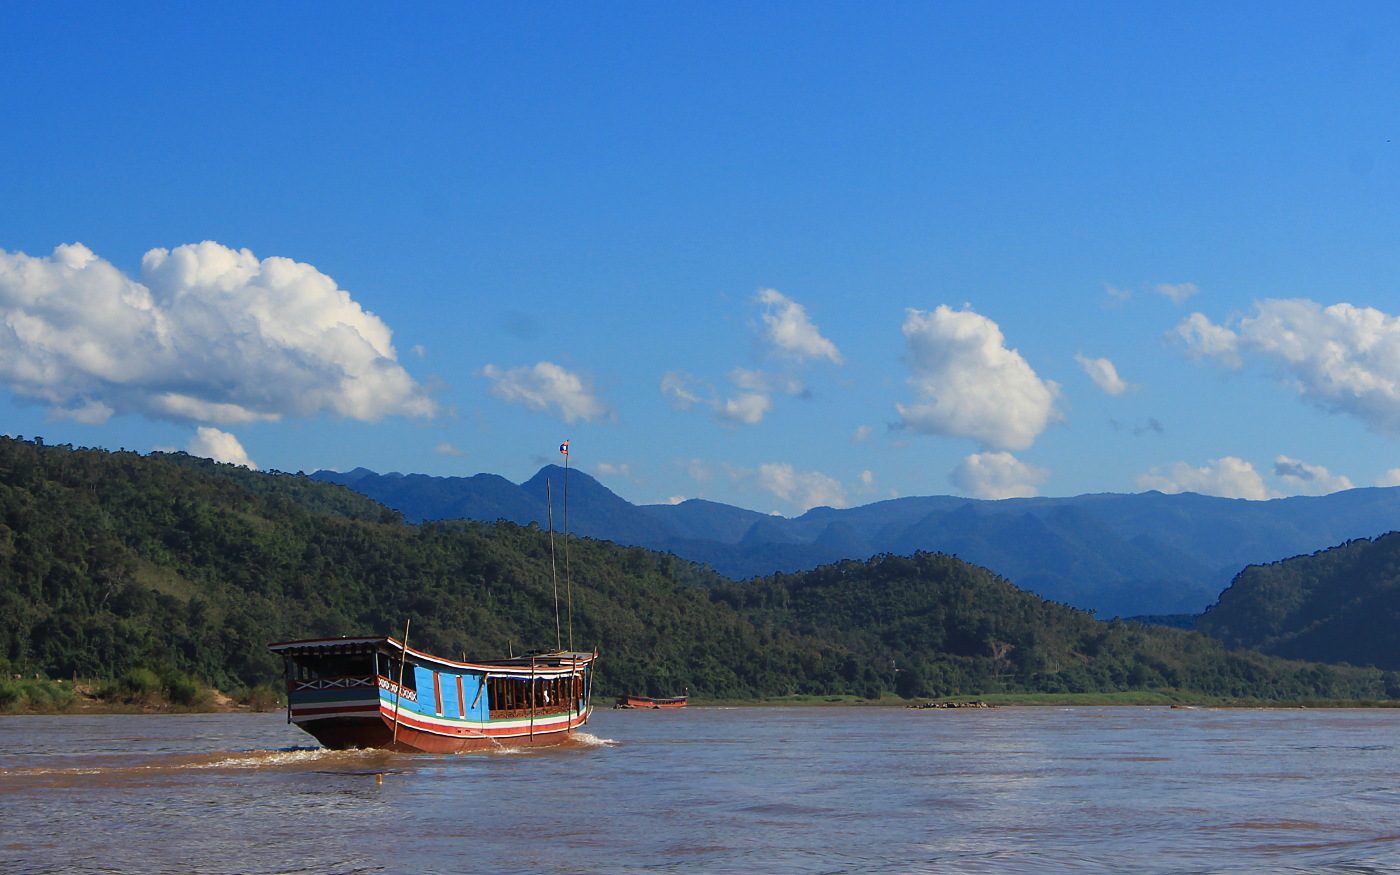 Slow boat from Luang Prabang to Huay Xai. A slow boat on the Mekong river..